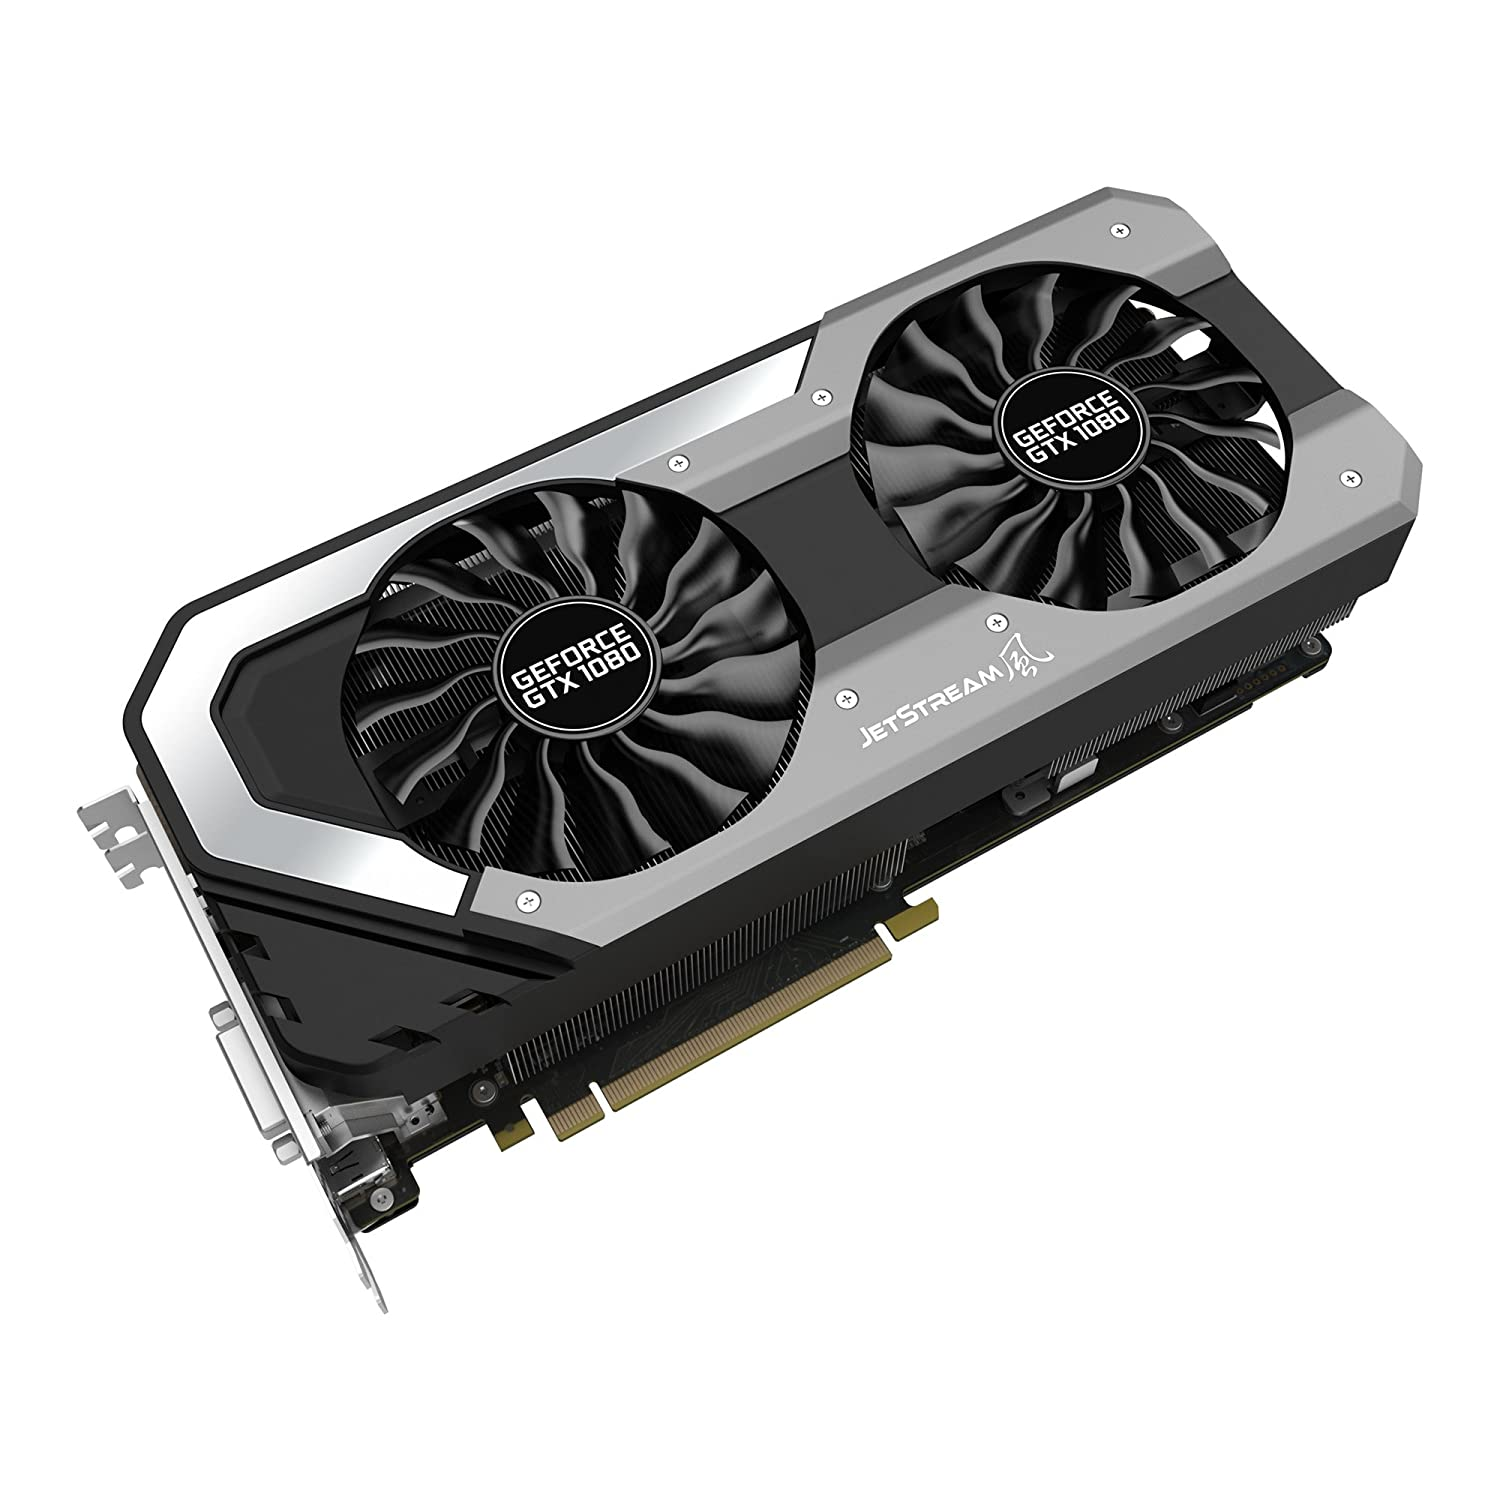 Palit GTX 1080 SuperJetStream Scheda Grafica da 8 GB, VGA, Nero